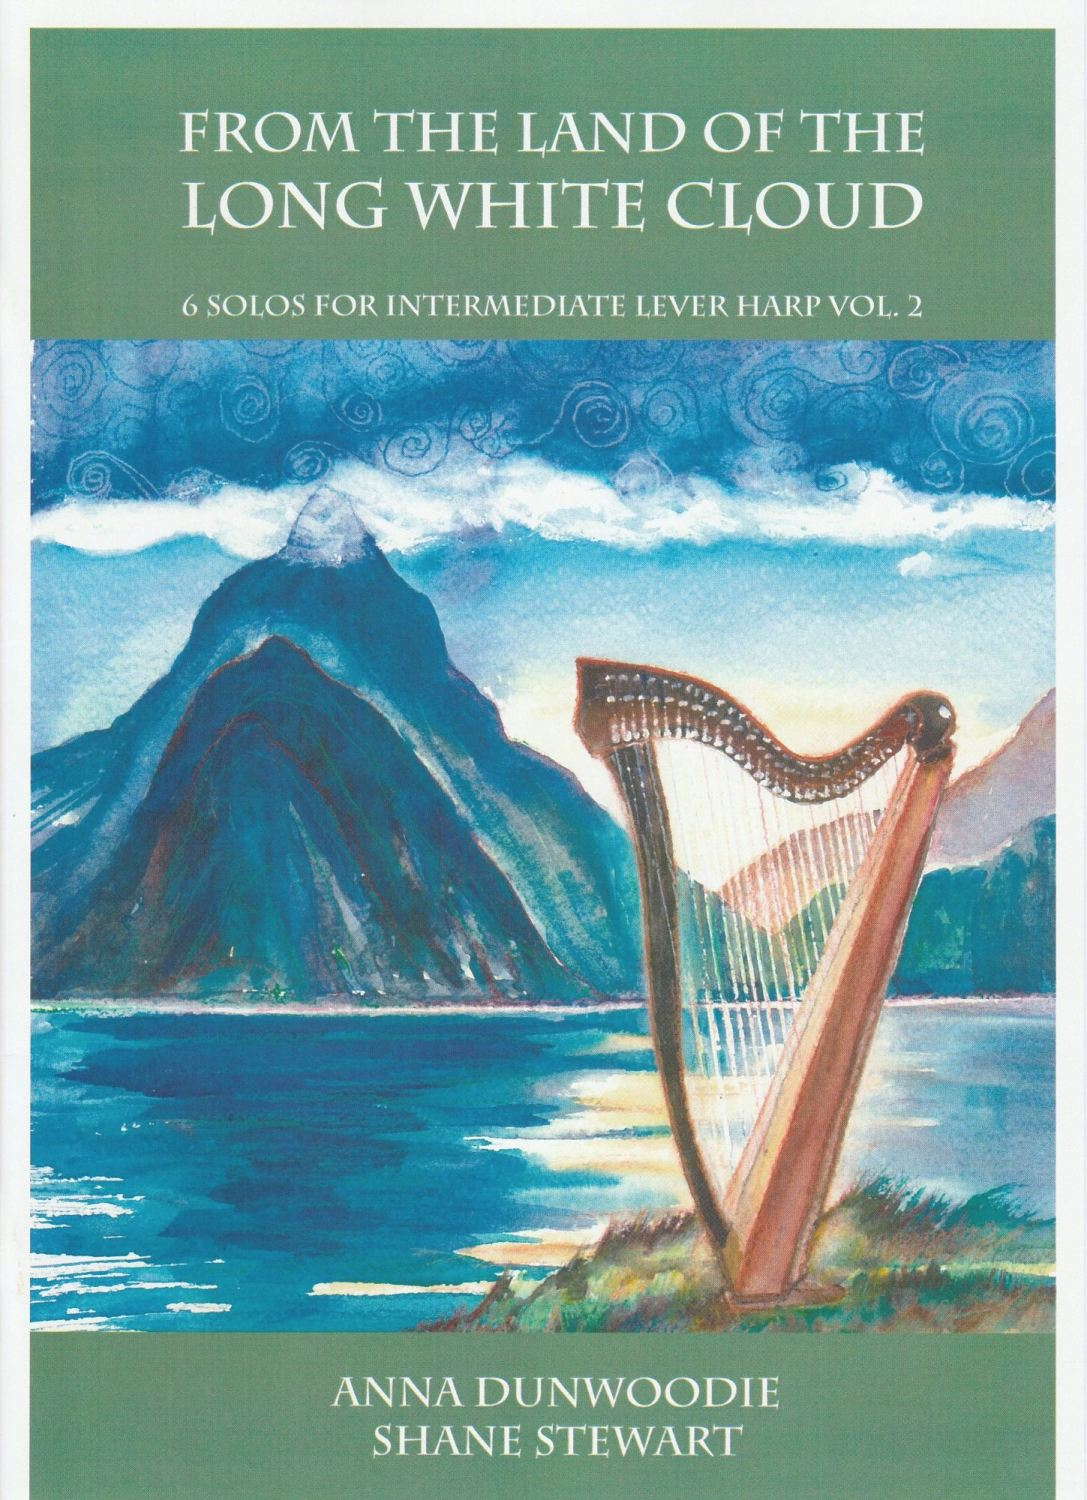 From the Land of the Long White Cloud Volume 2